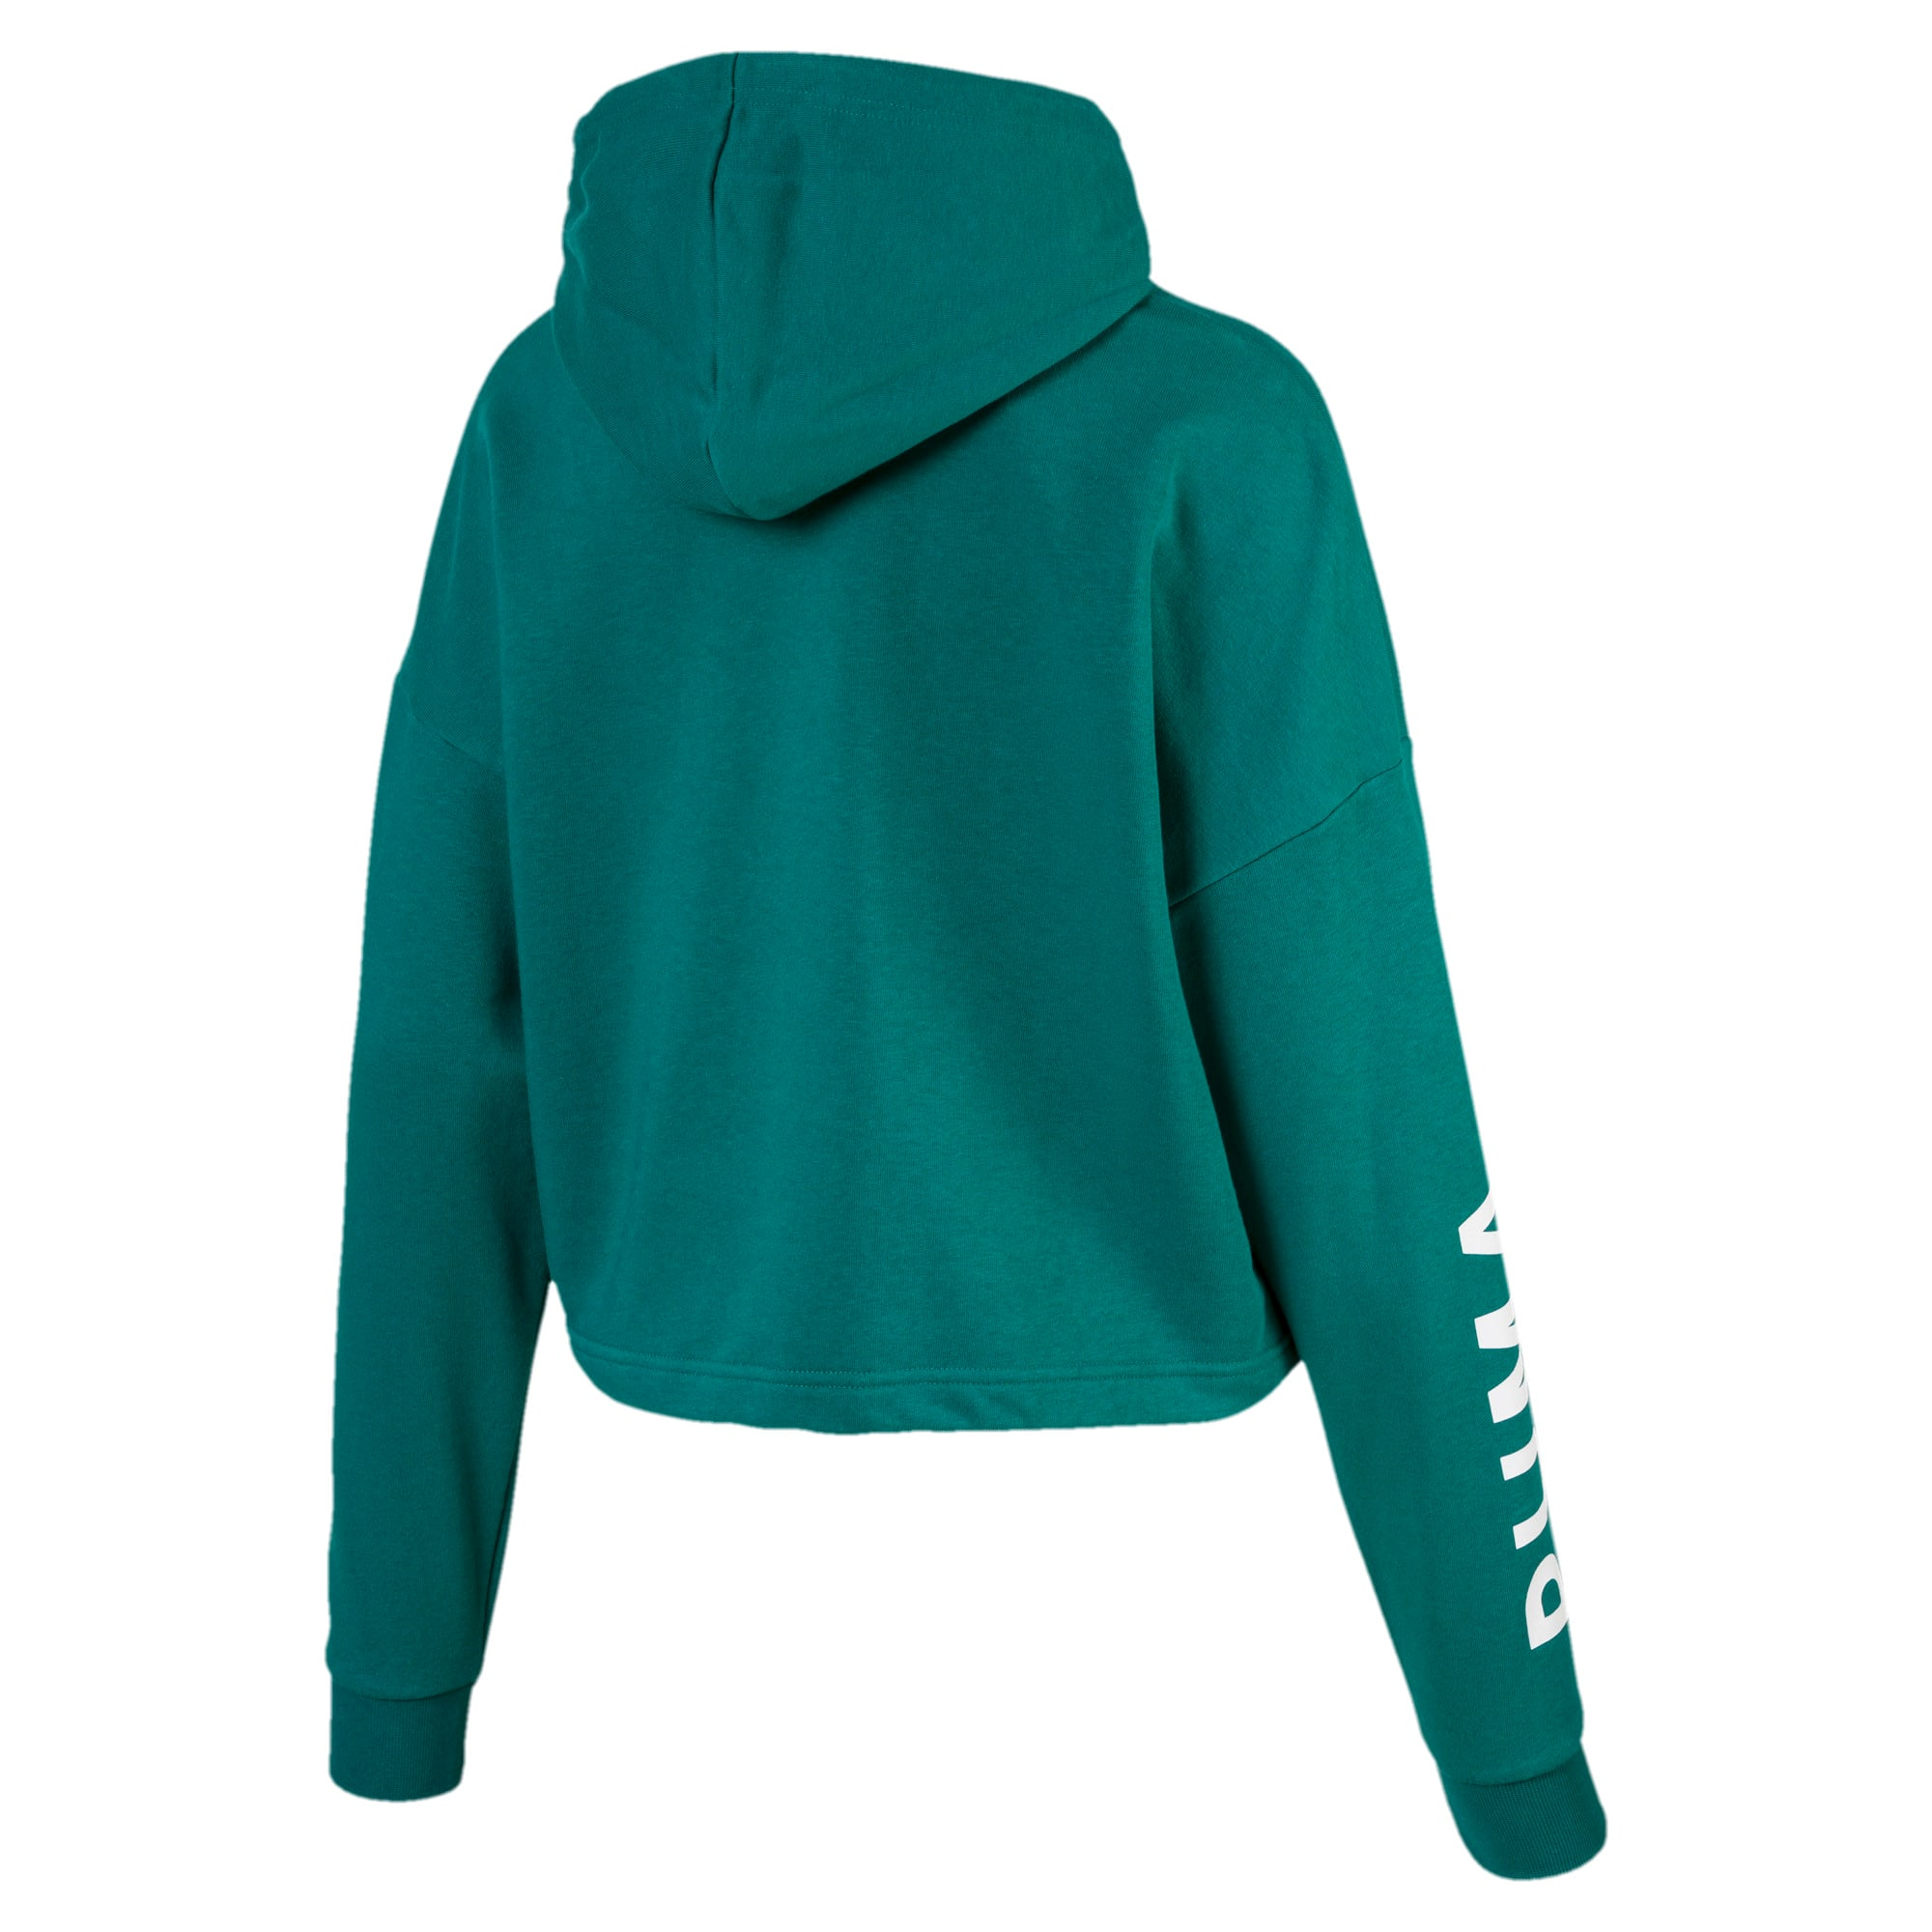 Thumbnail 5 of Chase Women's Cropped Hoodie, Teal Green, medium